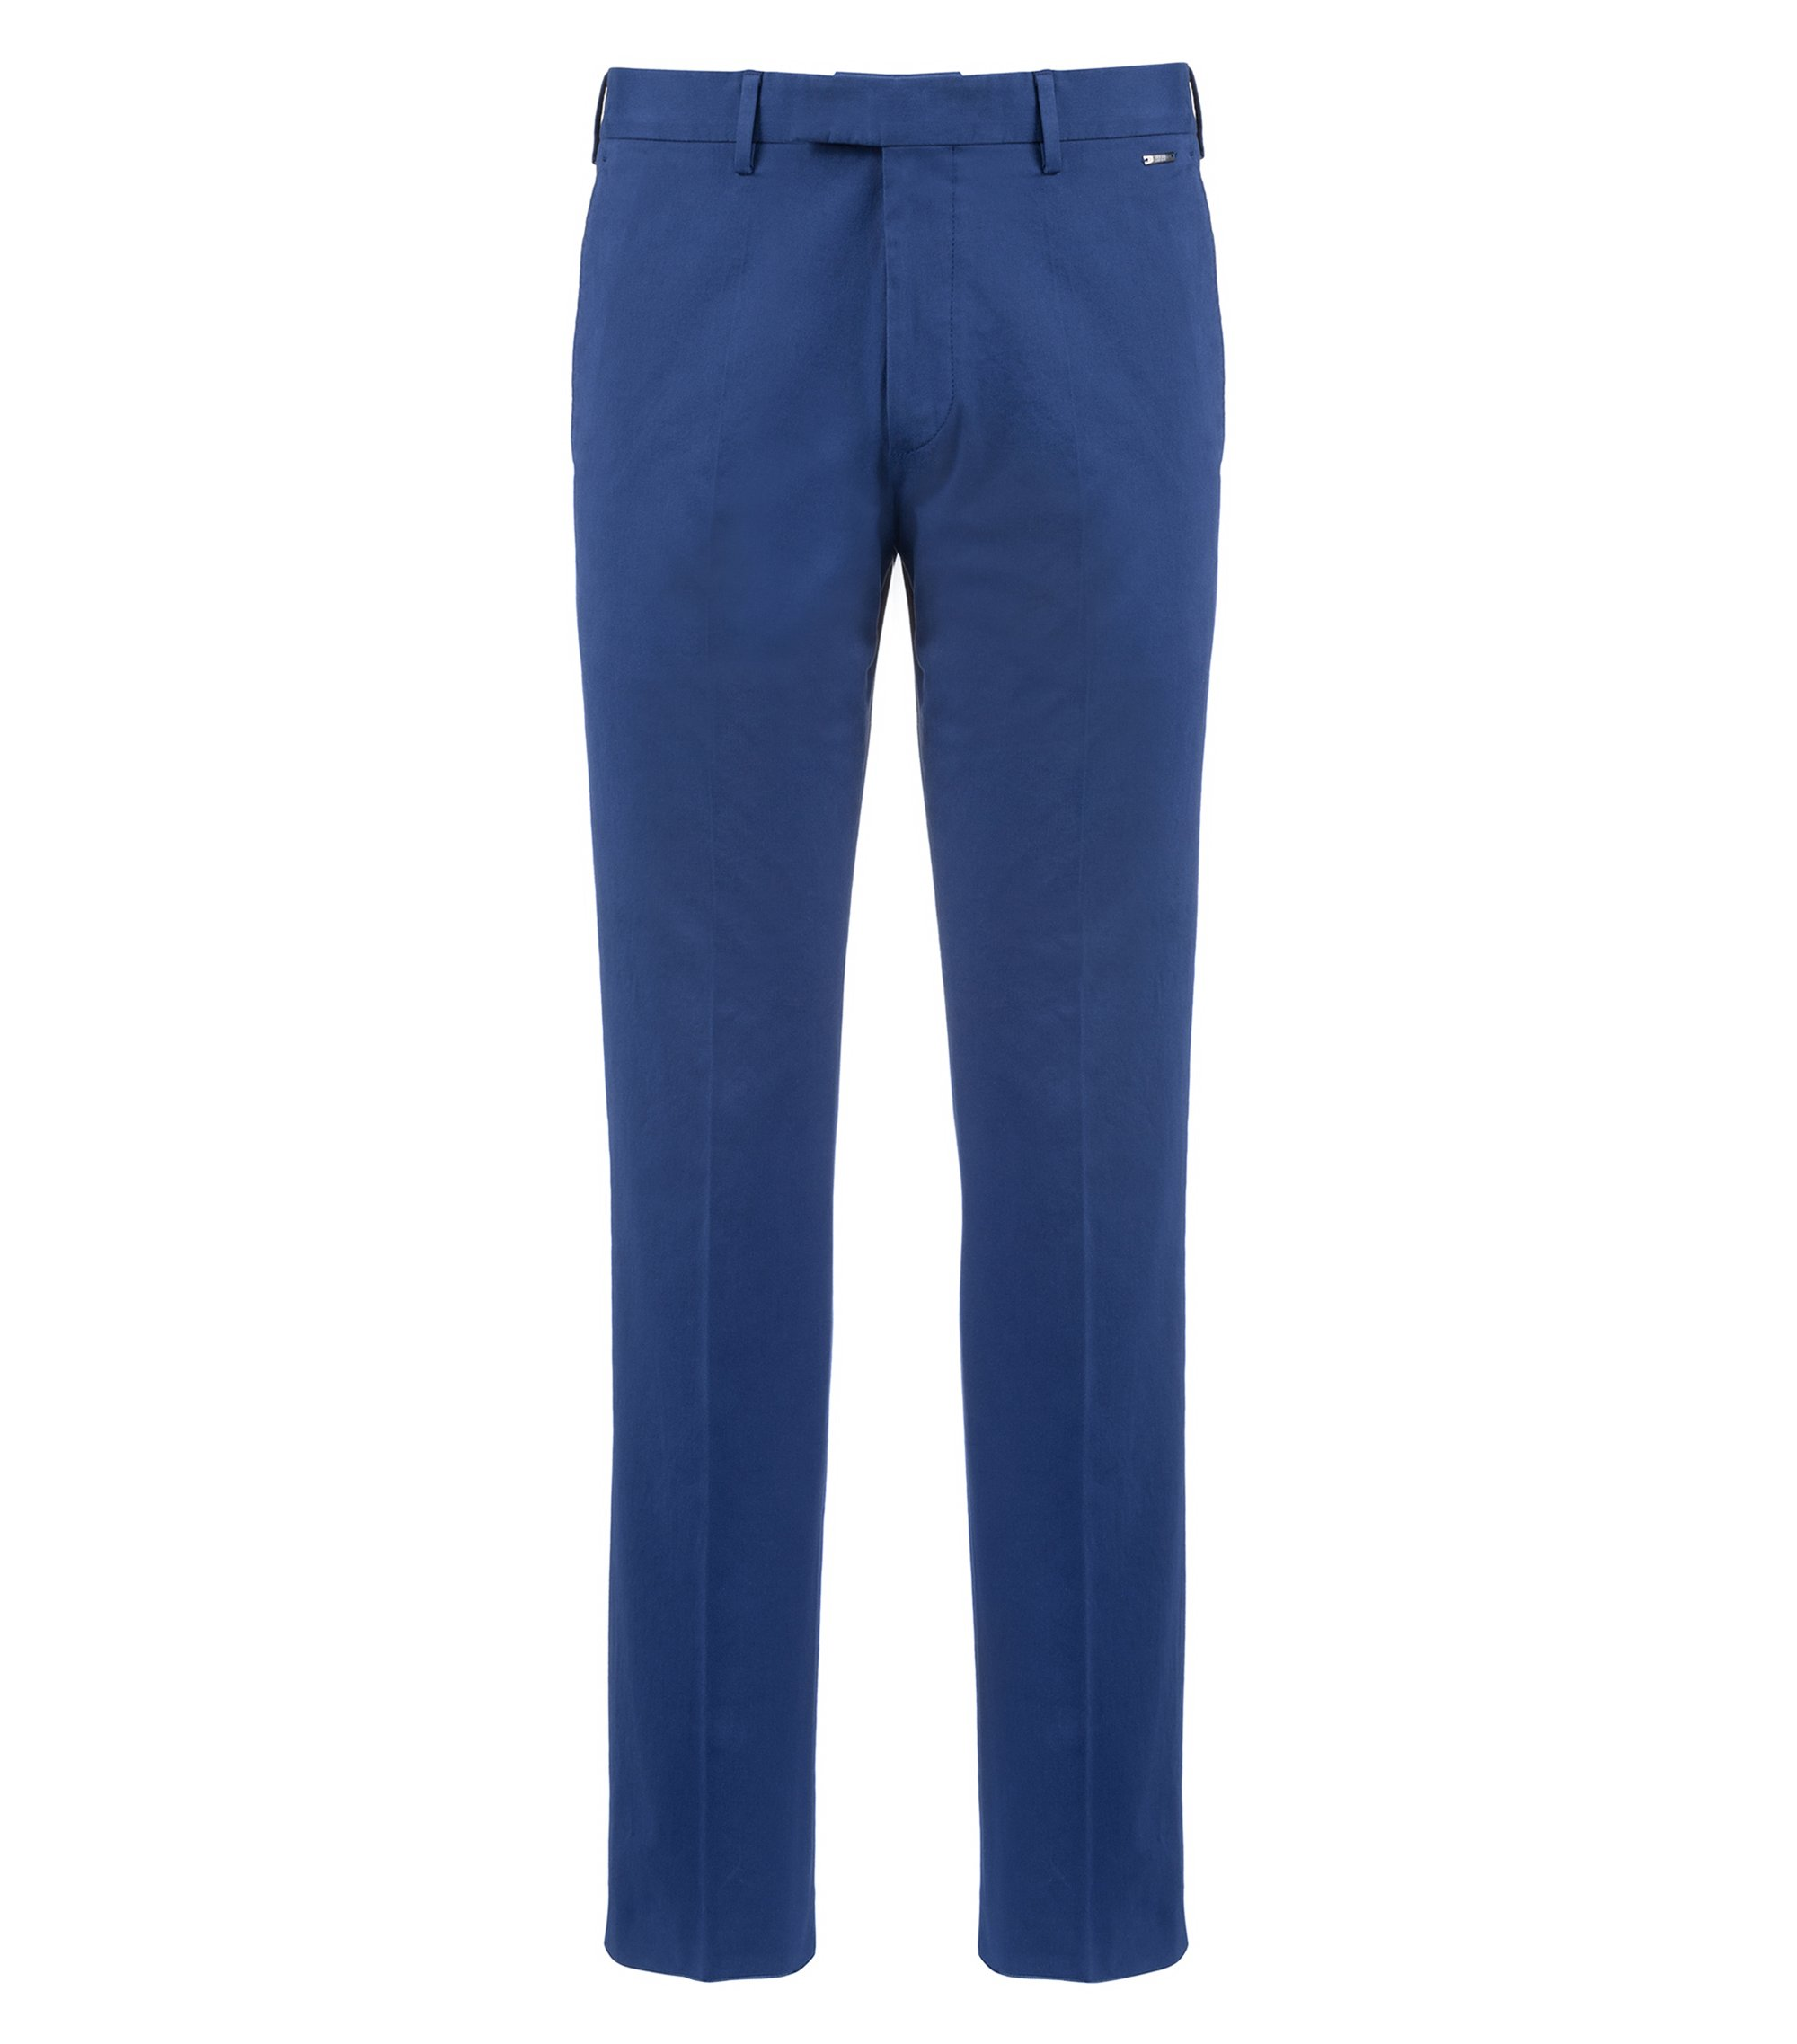 Pantalon Regular Fit en coton stretch lavé, Bleu foncé